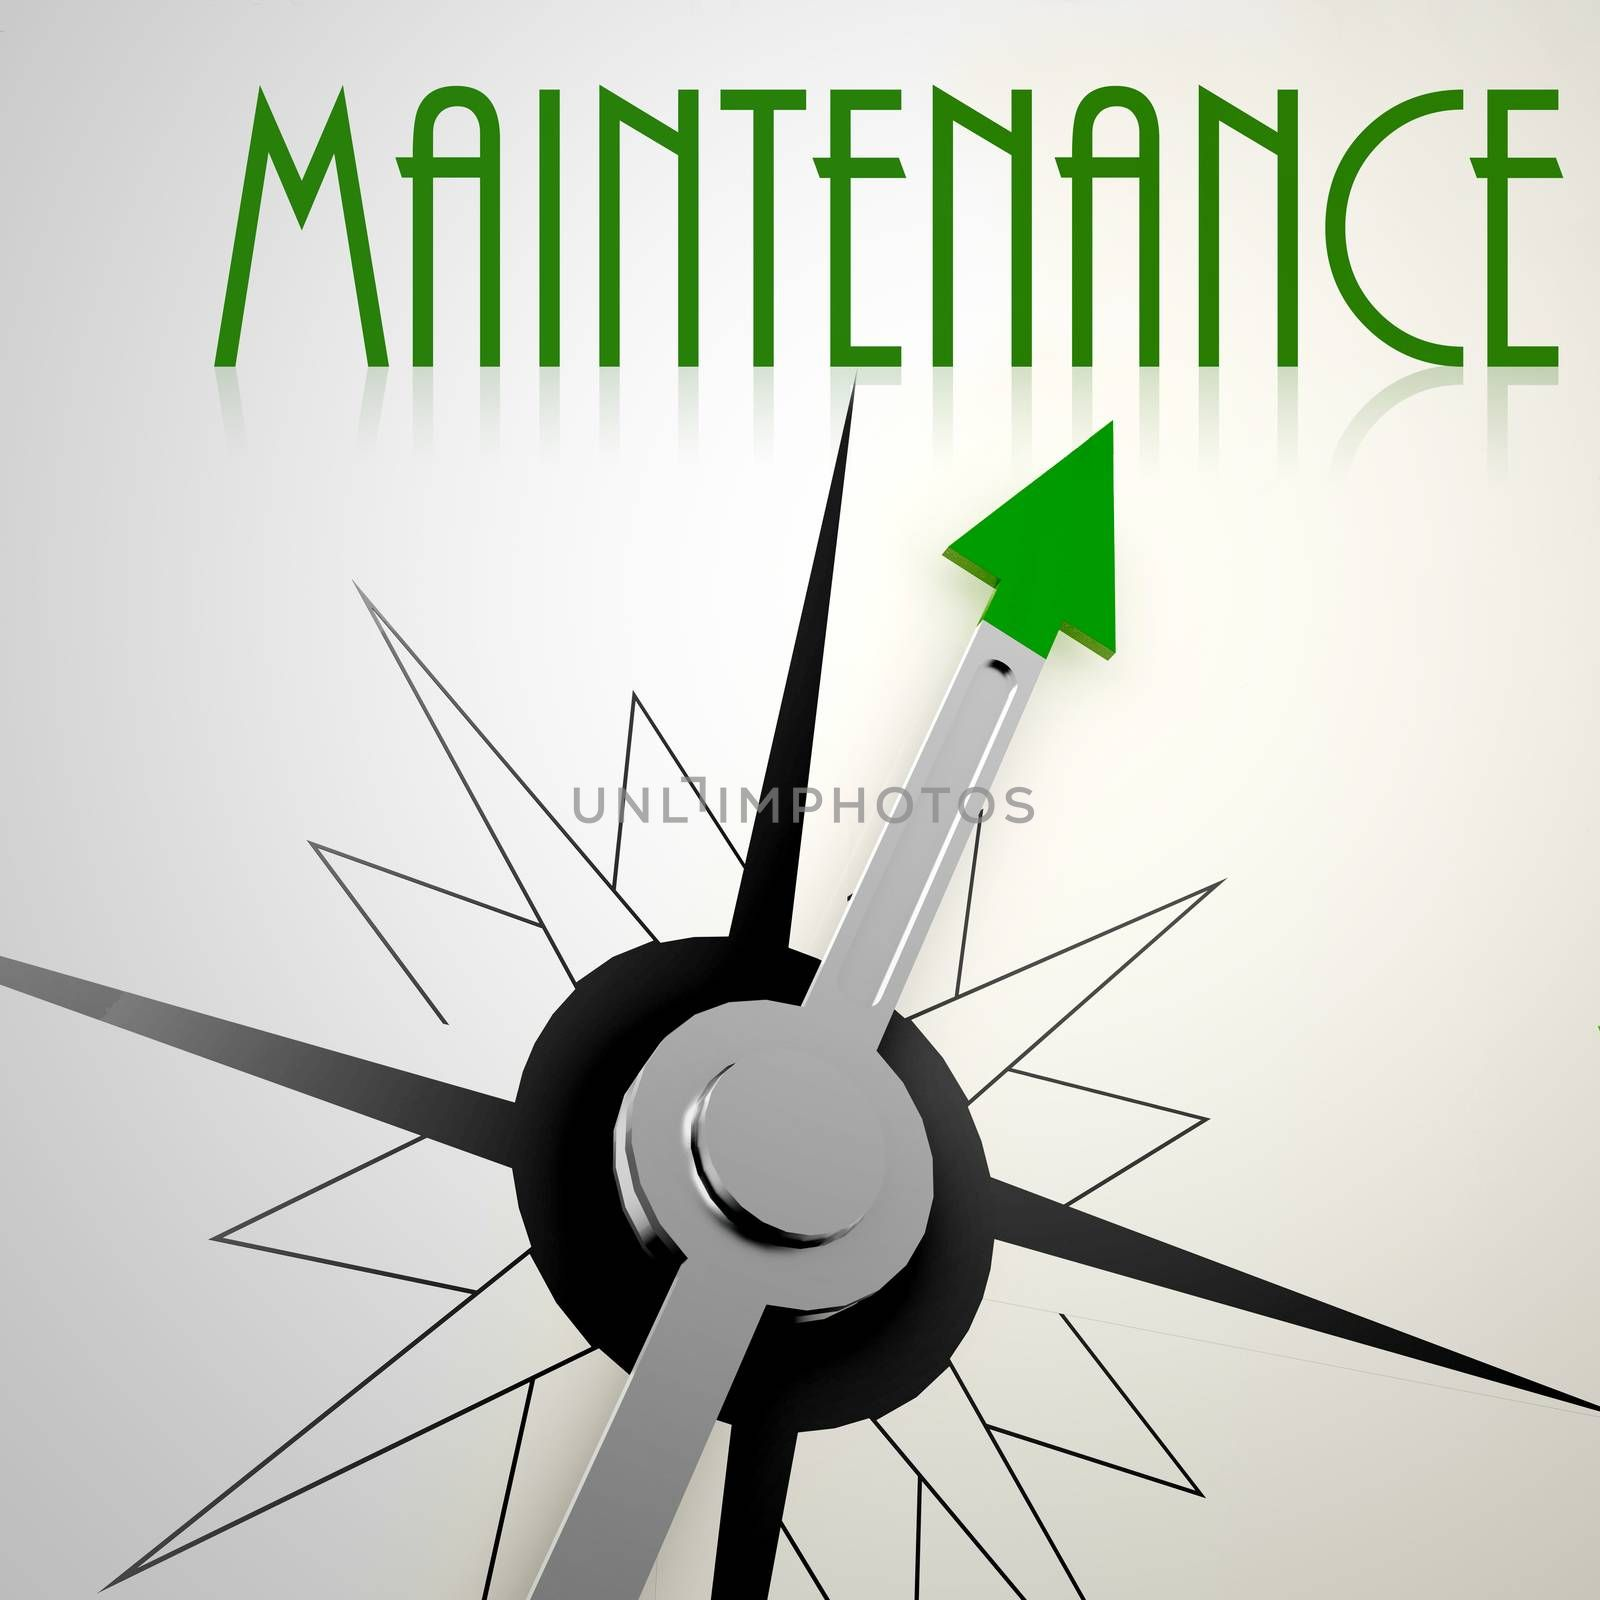 Maintenance on green compass. Concept of healthy lifestyle